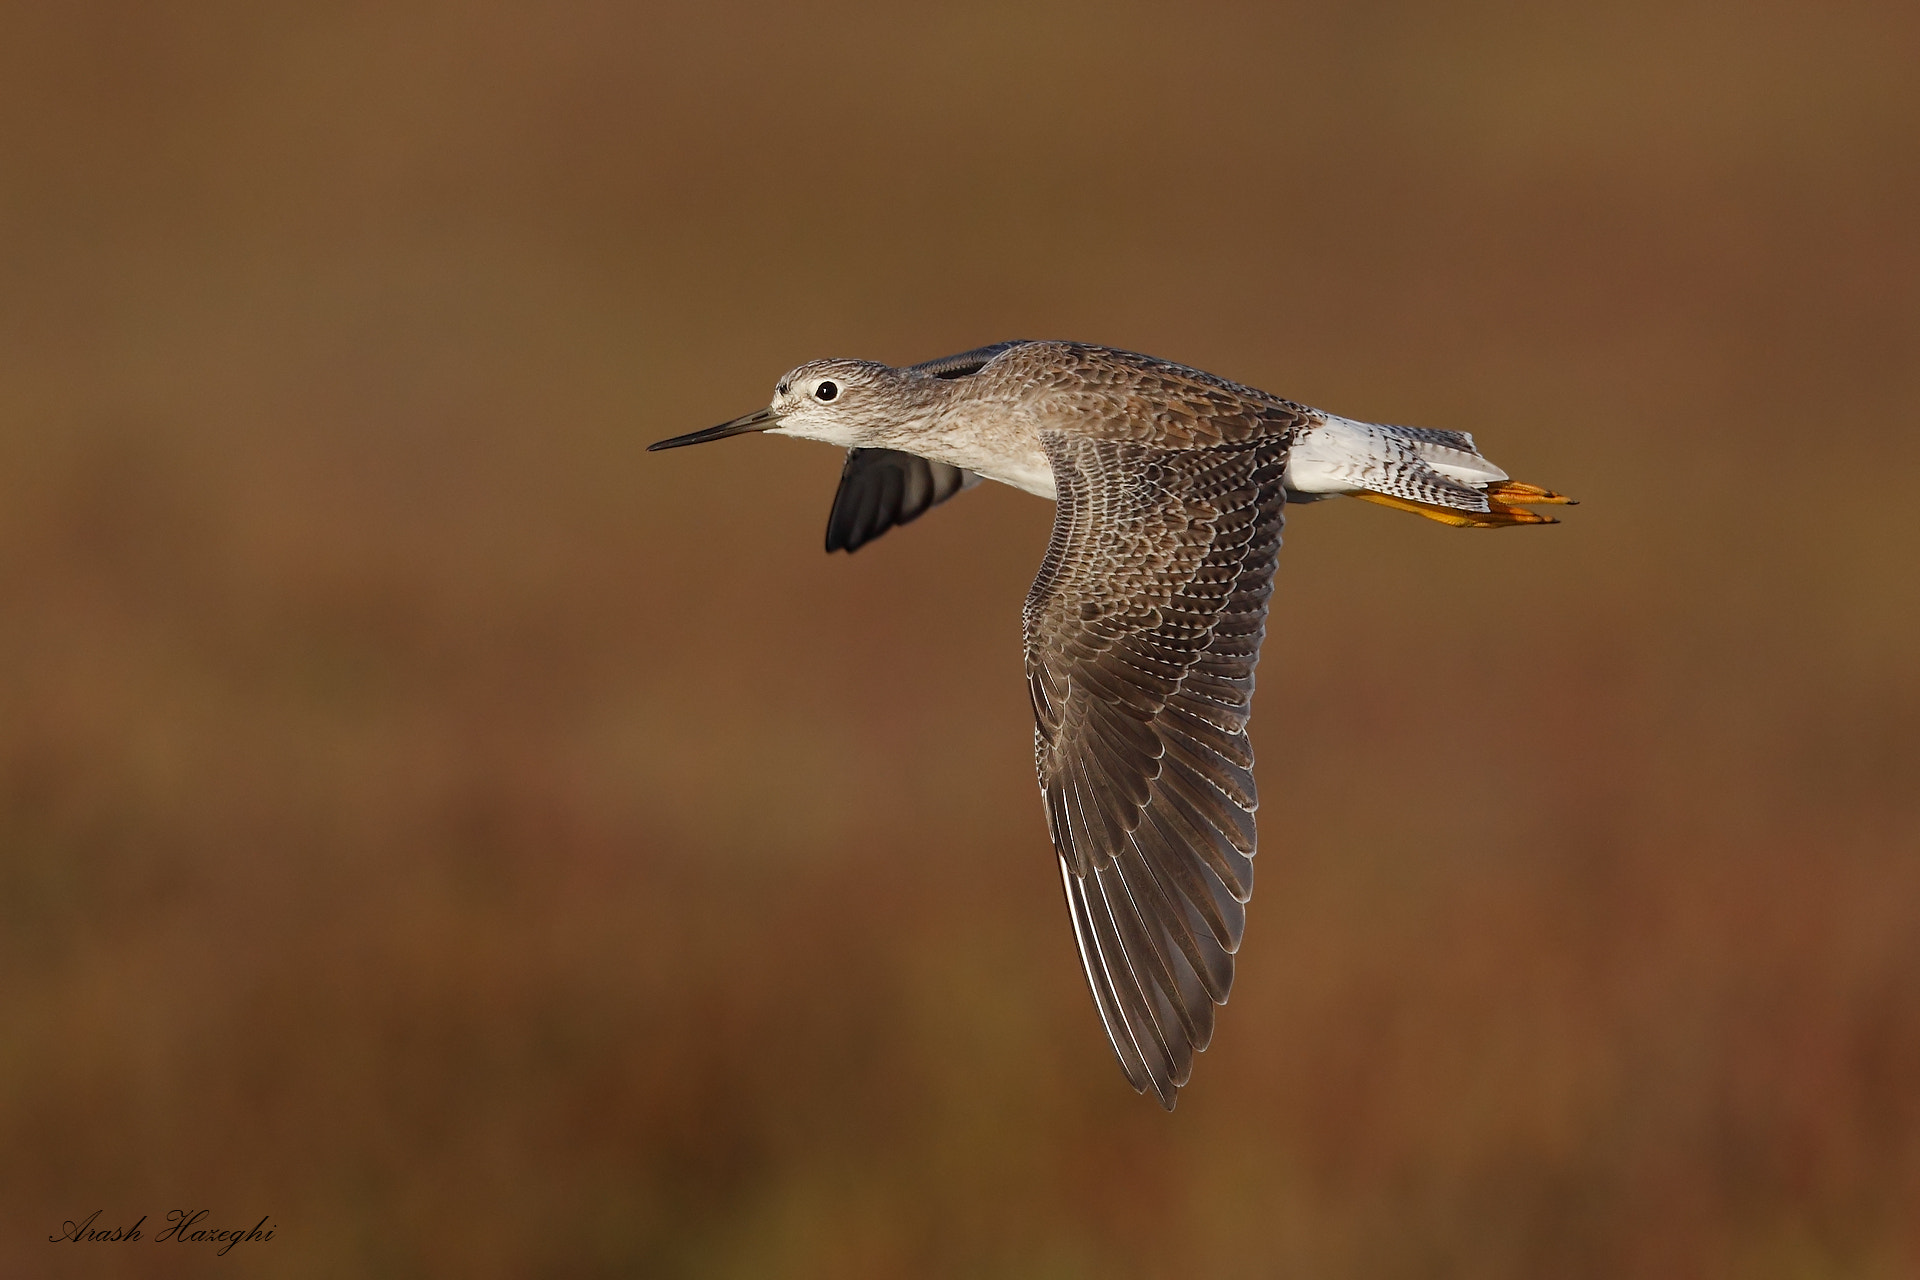 Photograph yellowlegs in flight by Ari Hazeghi on 500px